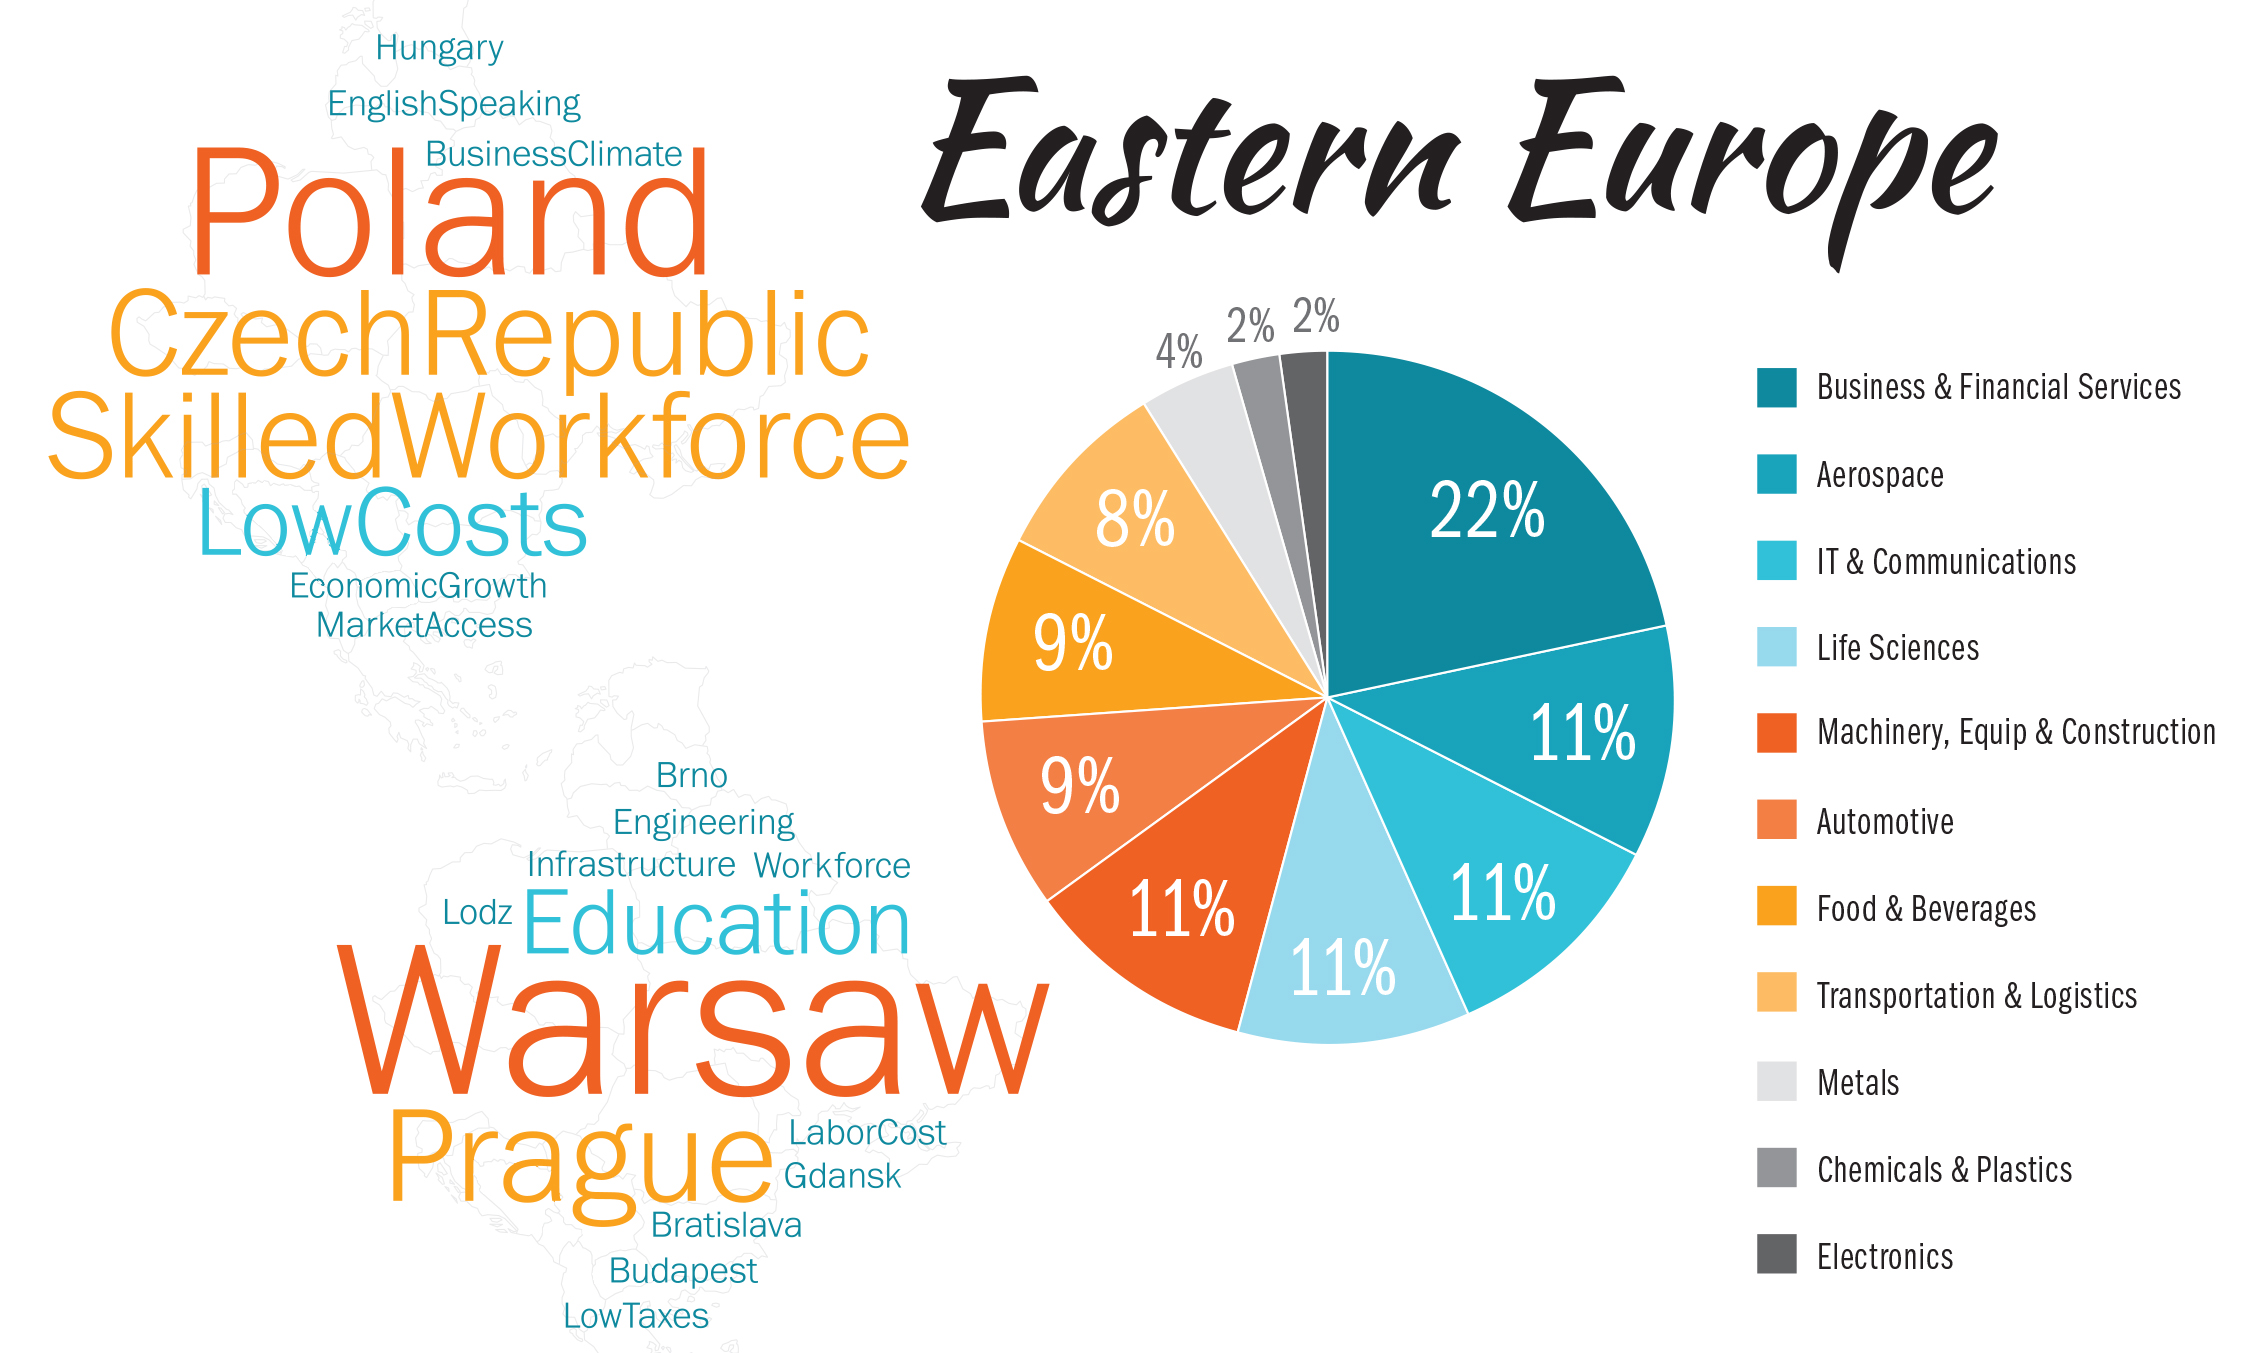 Eastern Europe Graphic HR